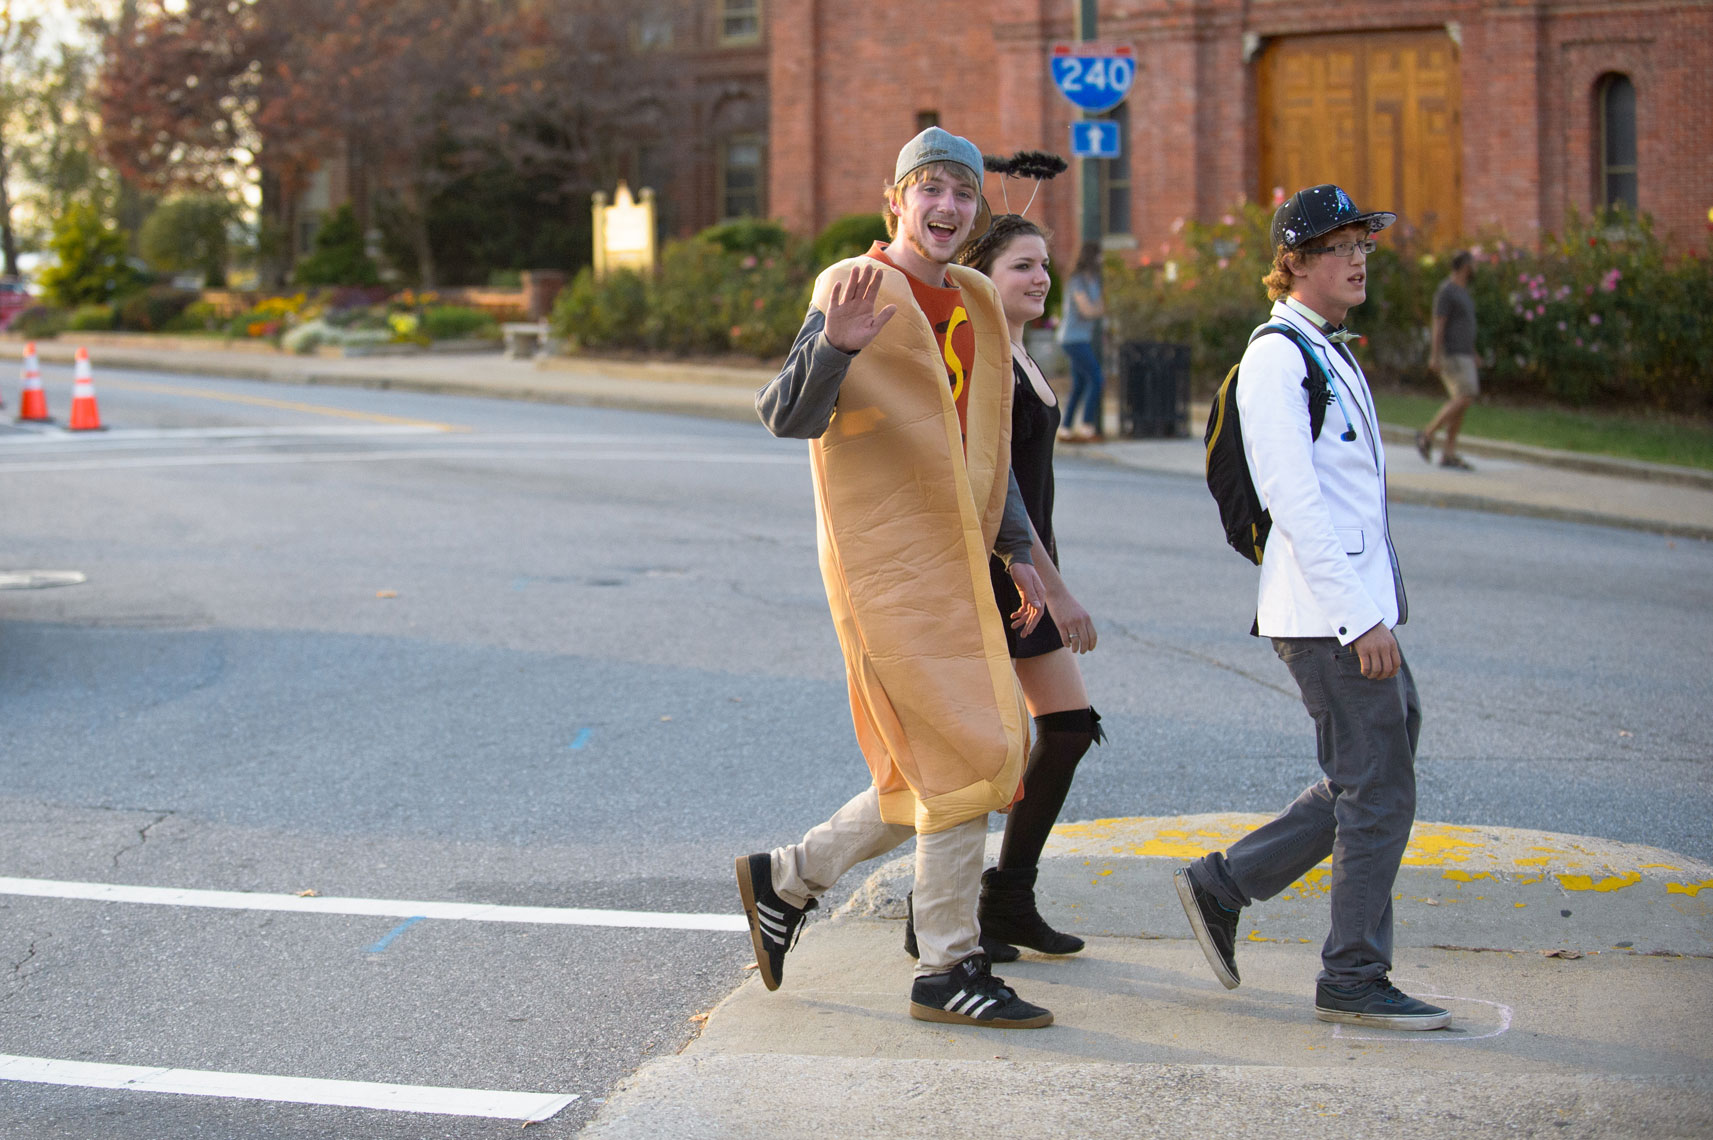 Day-One-of-Moogfest-in-Asheville,-NC-on-October-26,-2012-5